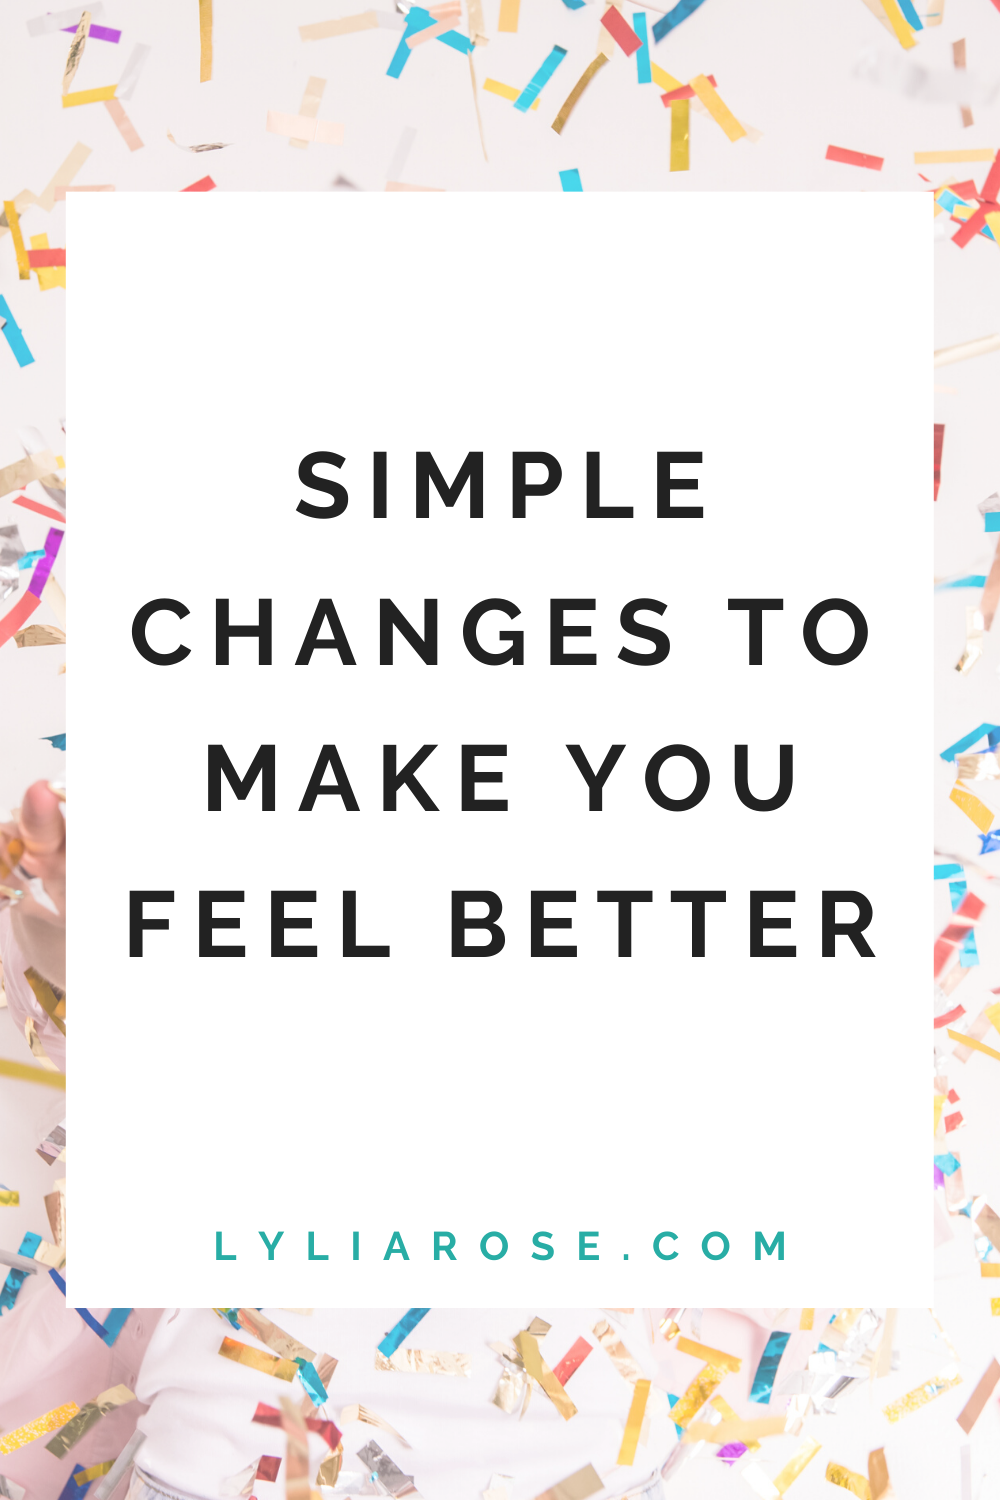 Simple changes to make you feel better (1)